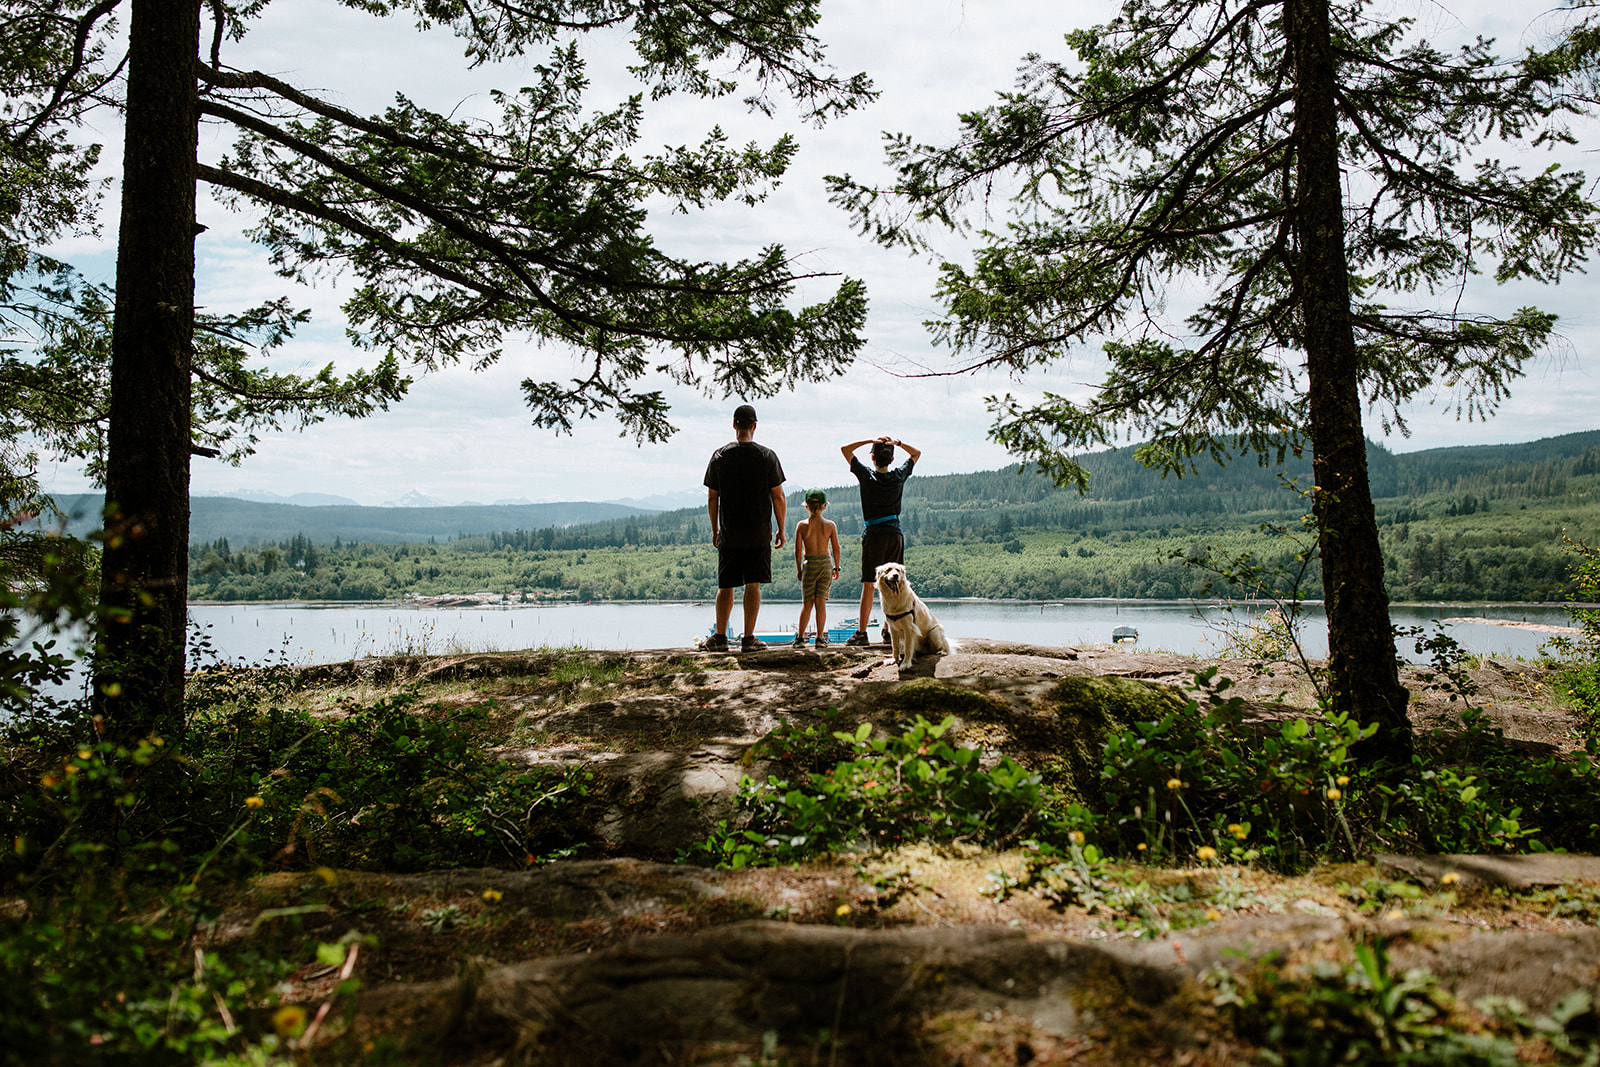 A family of 3 standing at the Ripple Rock View Point